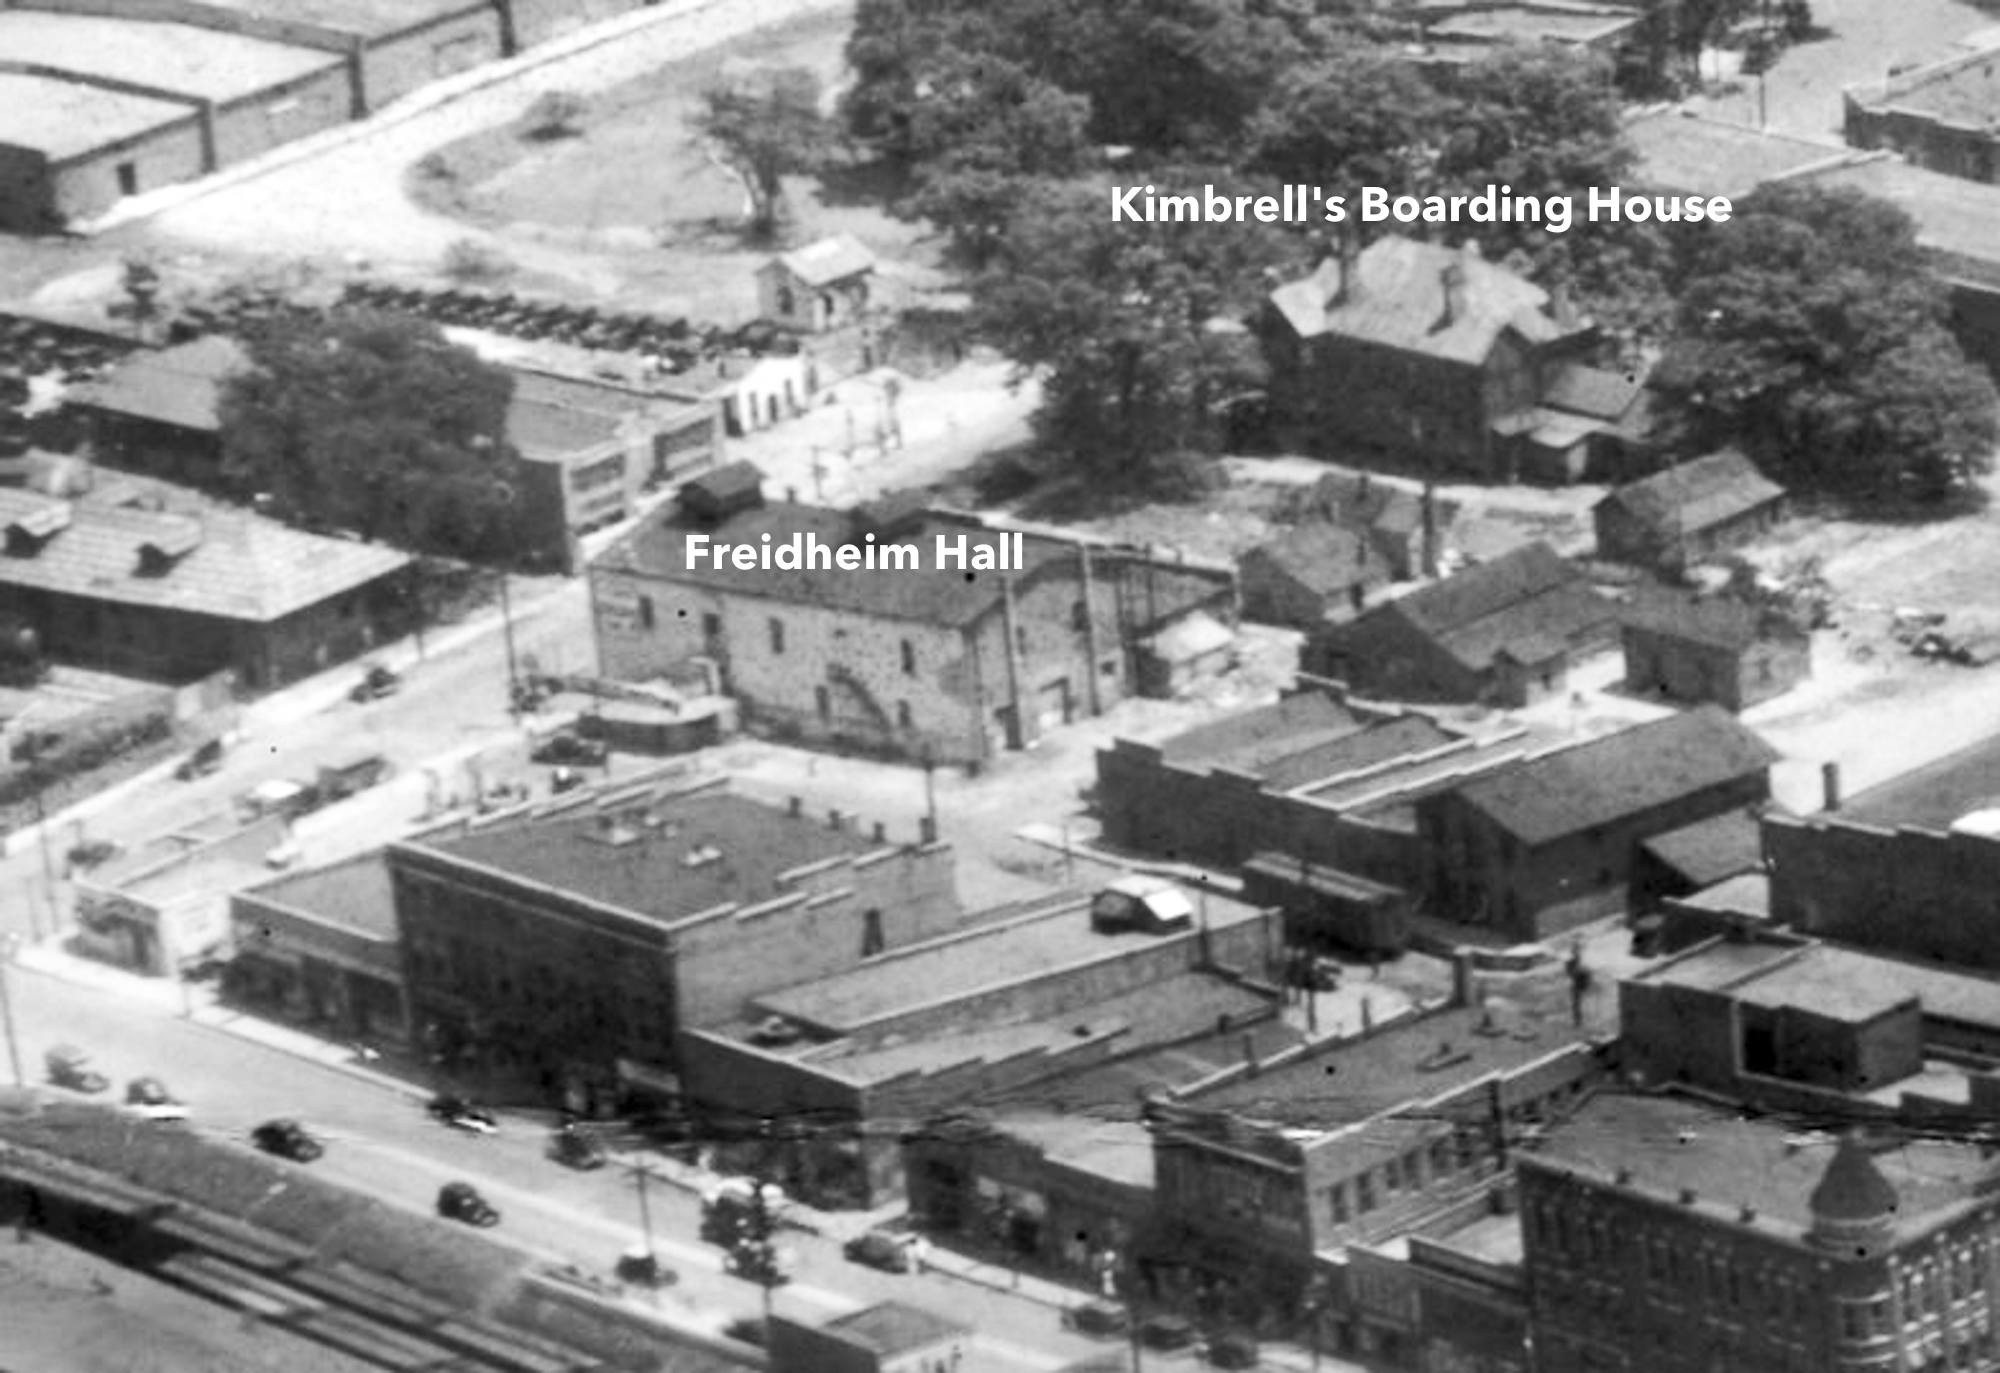 Aerial view showing the location of Kimbrell's Boarding house across the street from Friedheim Hall